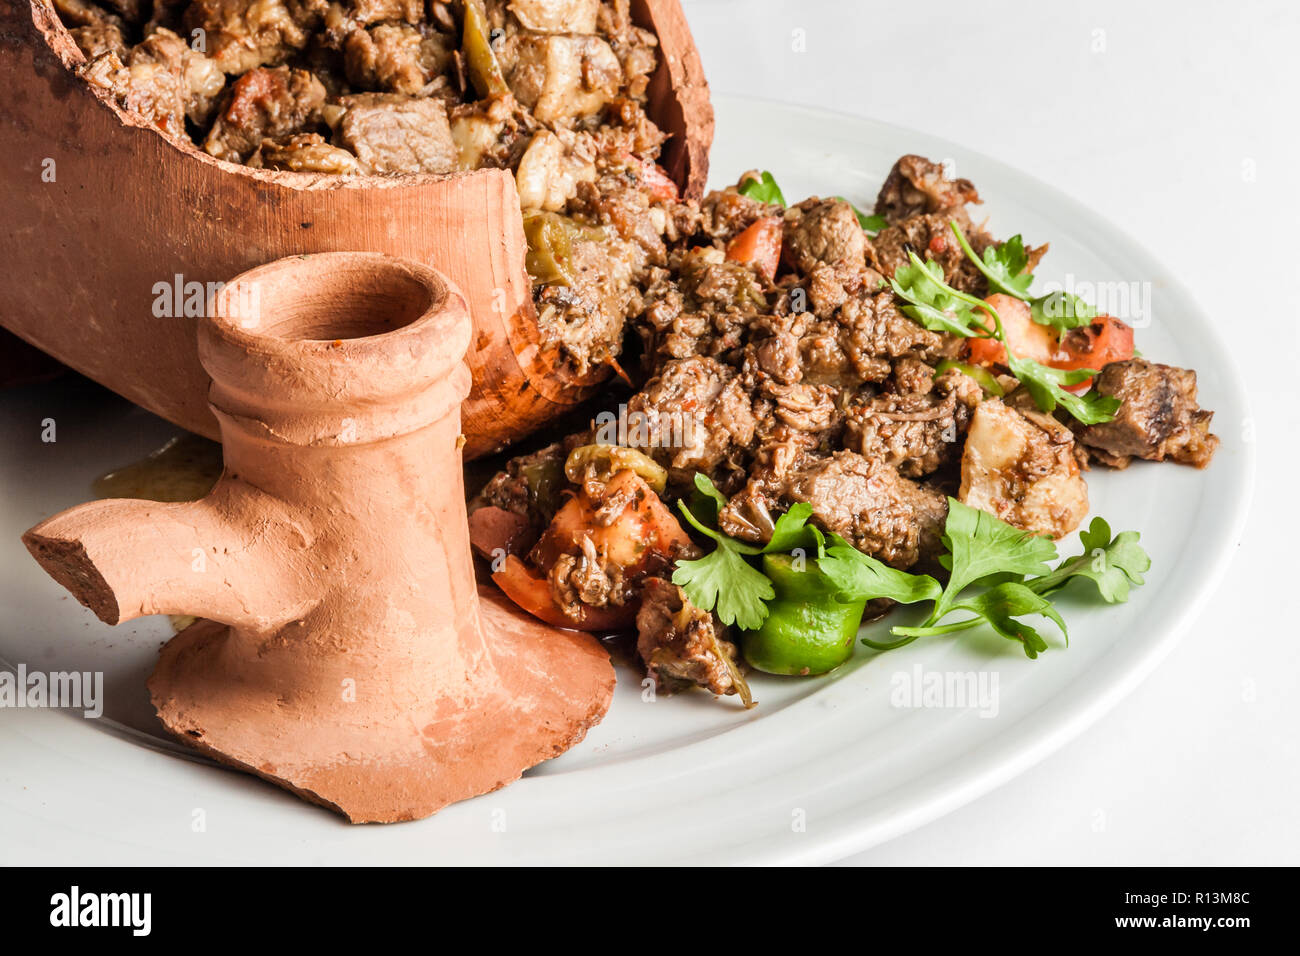 Authentic Turkish Testi Kebab cooked in earthenware waterjug - Stock Image